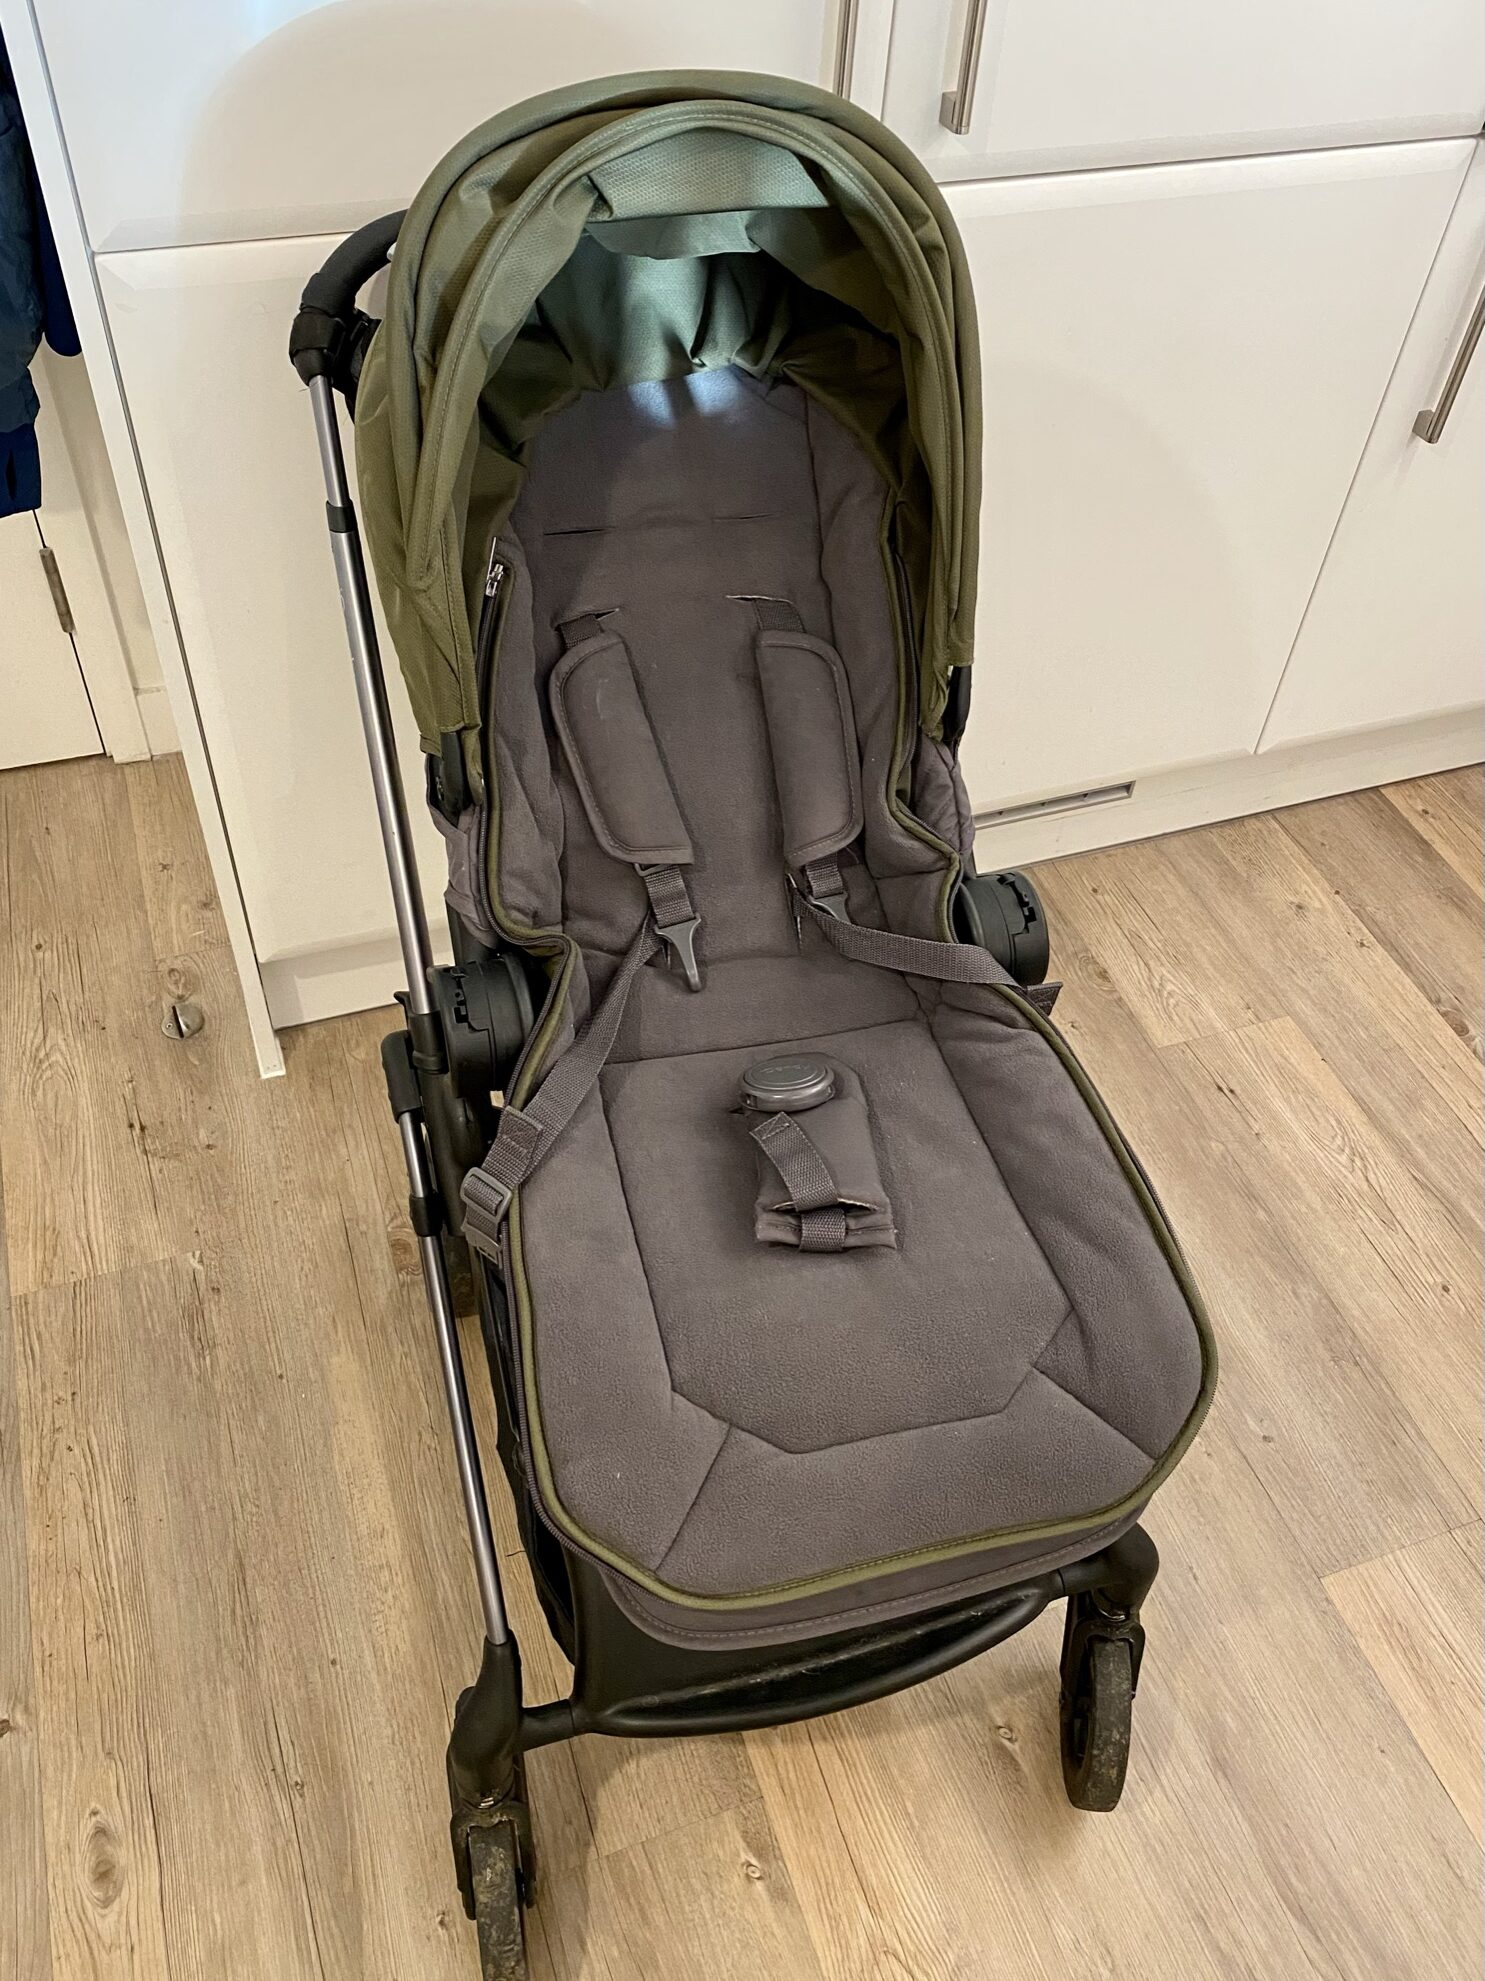 Author's iCandy Raspberry pushchair with seat liner fleece side up